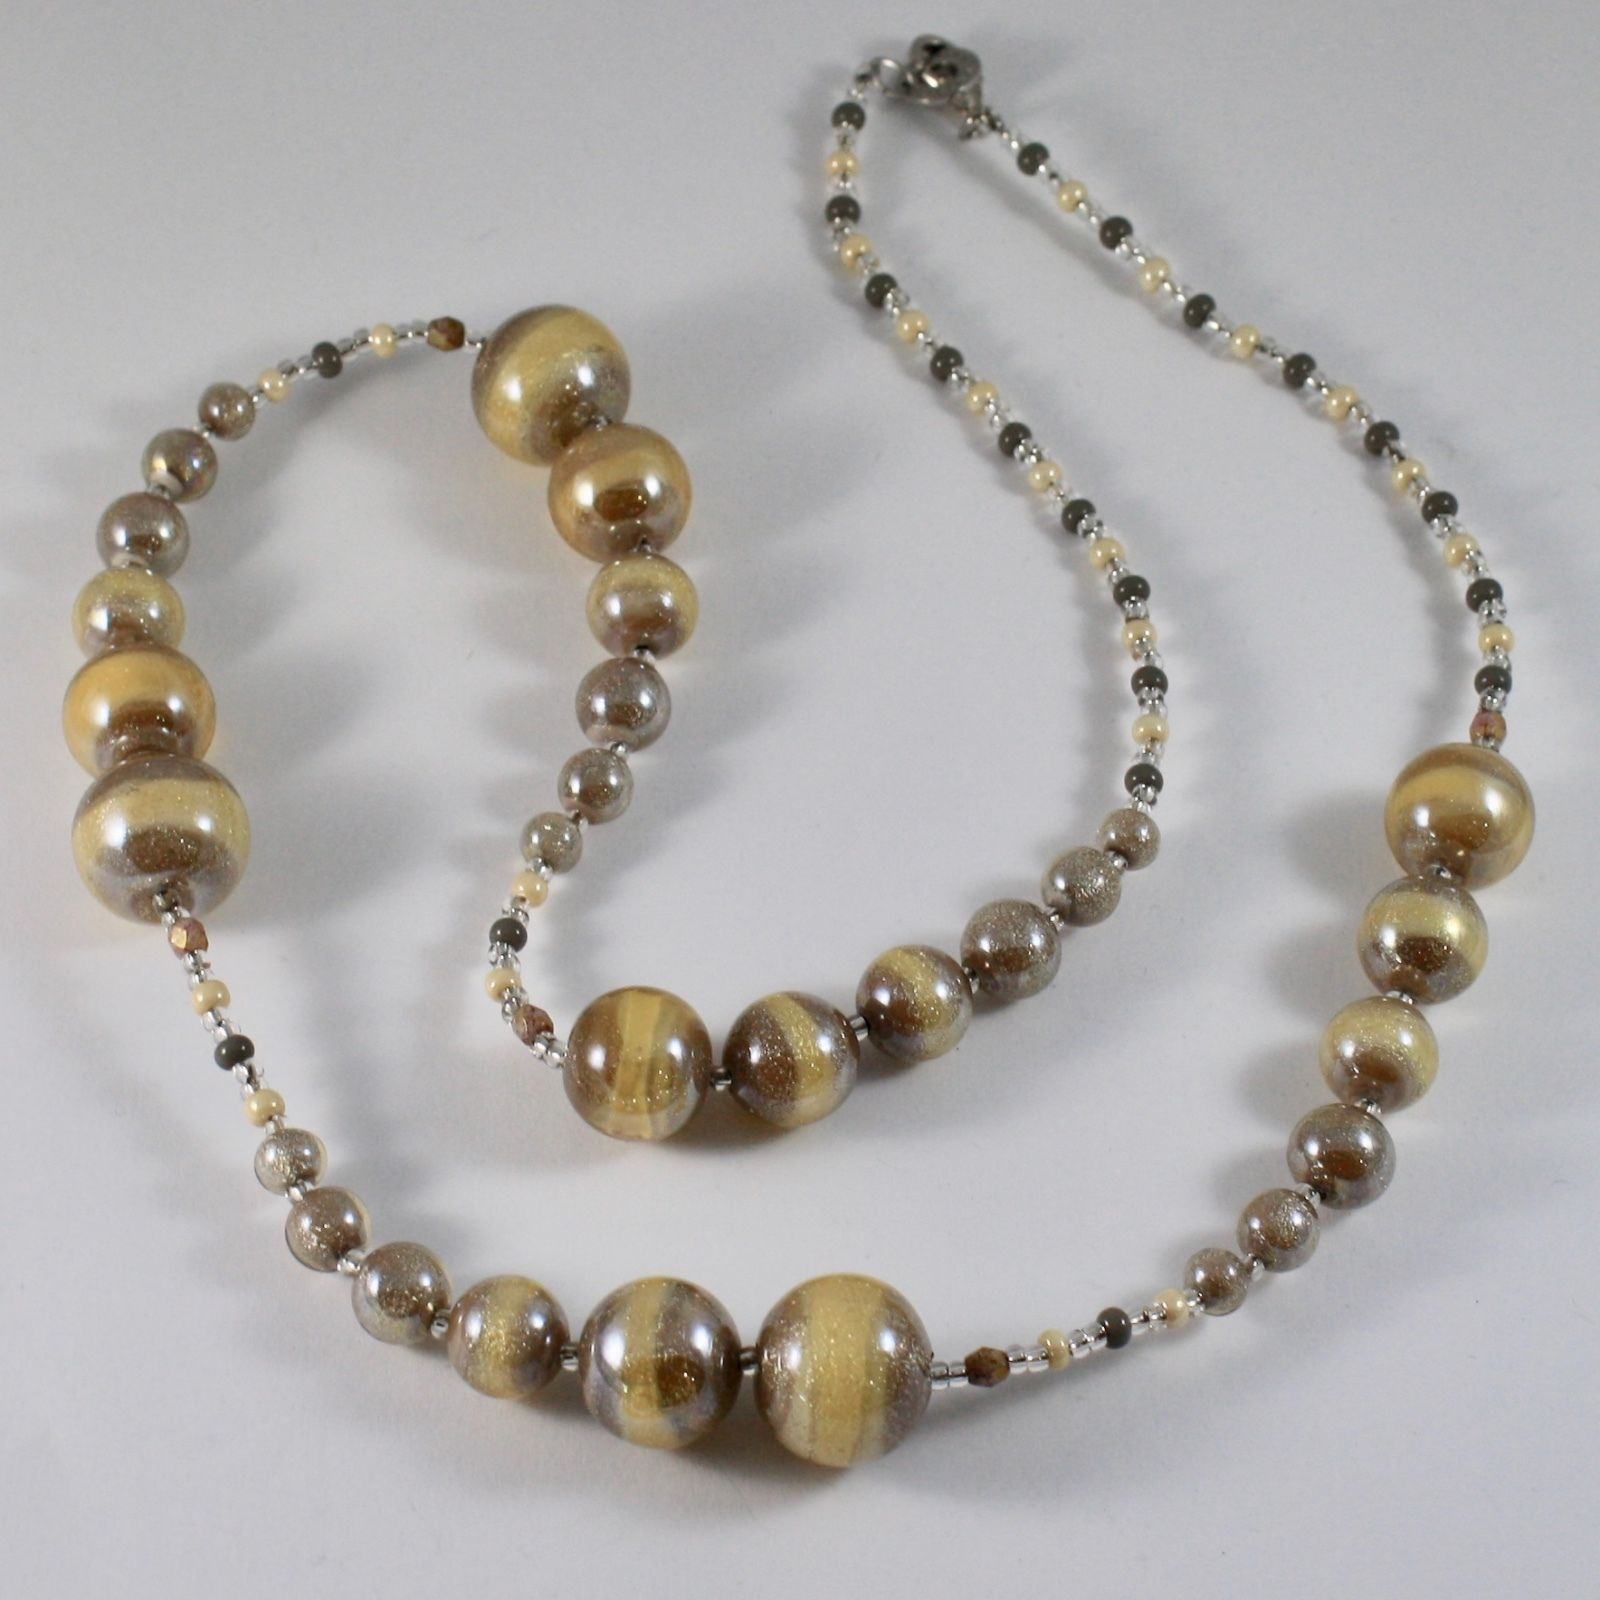 NECKLACE ANTICA MURRINA VENEZIA MURANO GLASS, SPHERES YELLOW BROWN LONG 75 CM